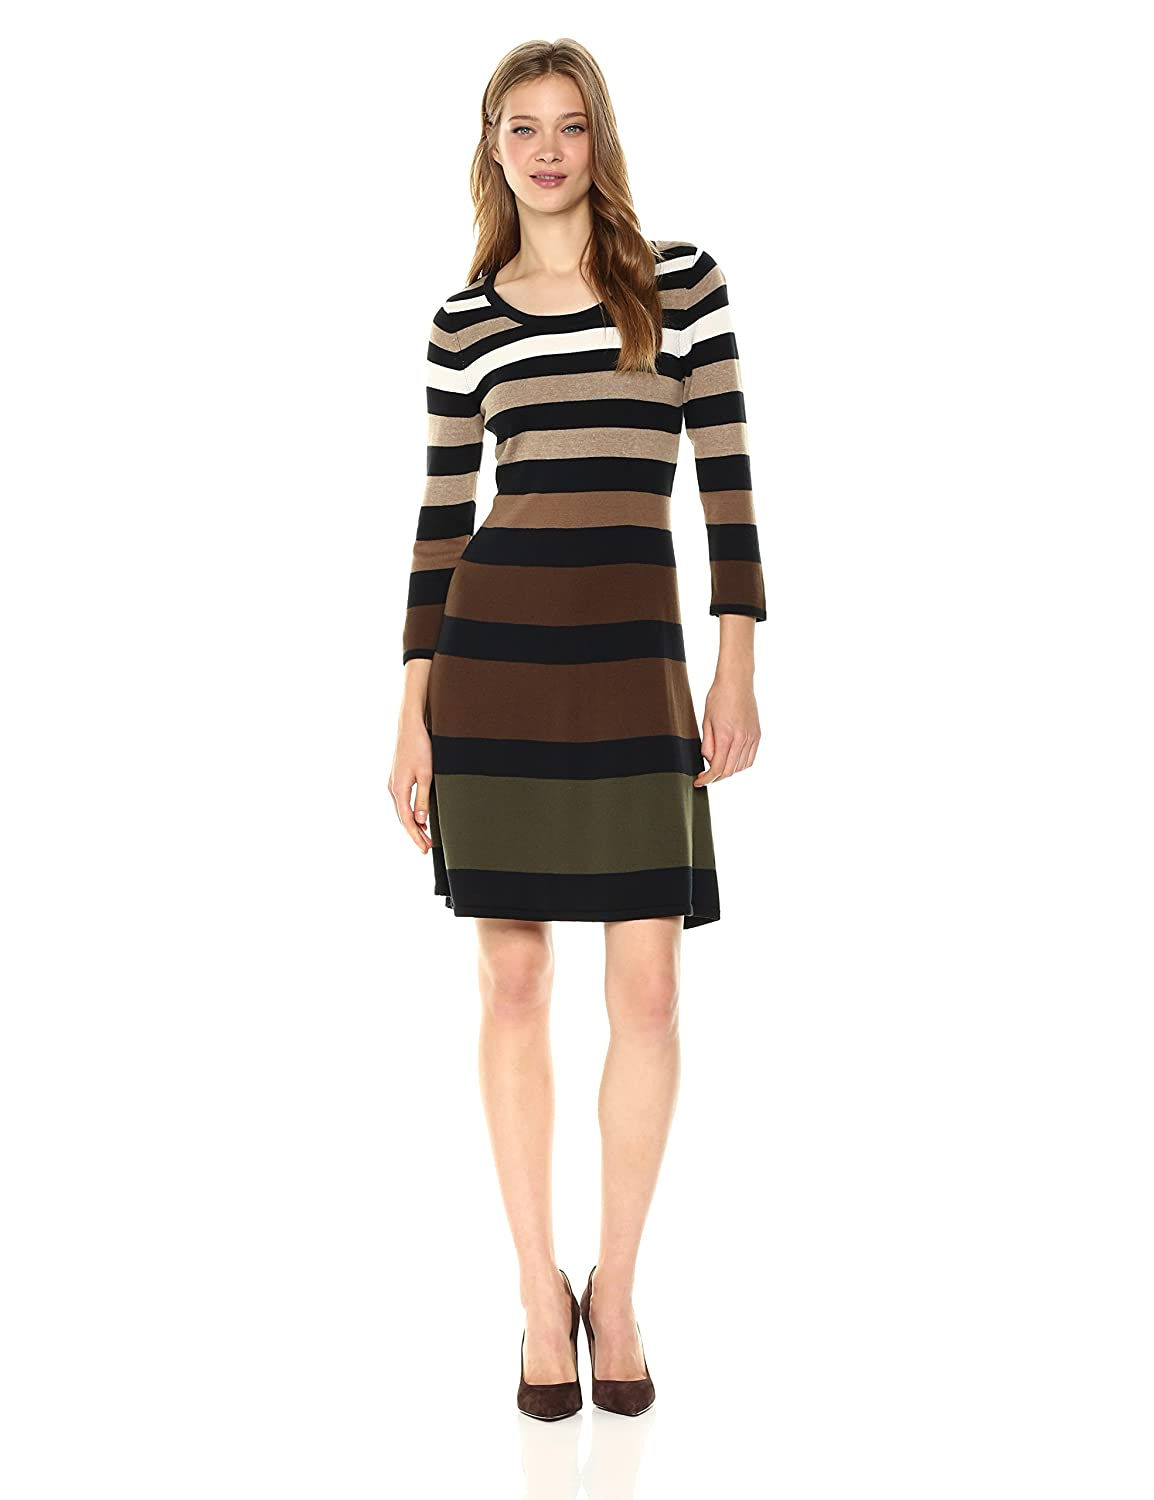 Black Army Multi Nine West Womens 3 4 Sleeve Fit and Flare Multi color Striped Dress Dress